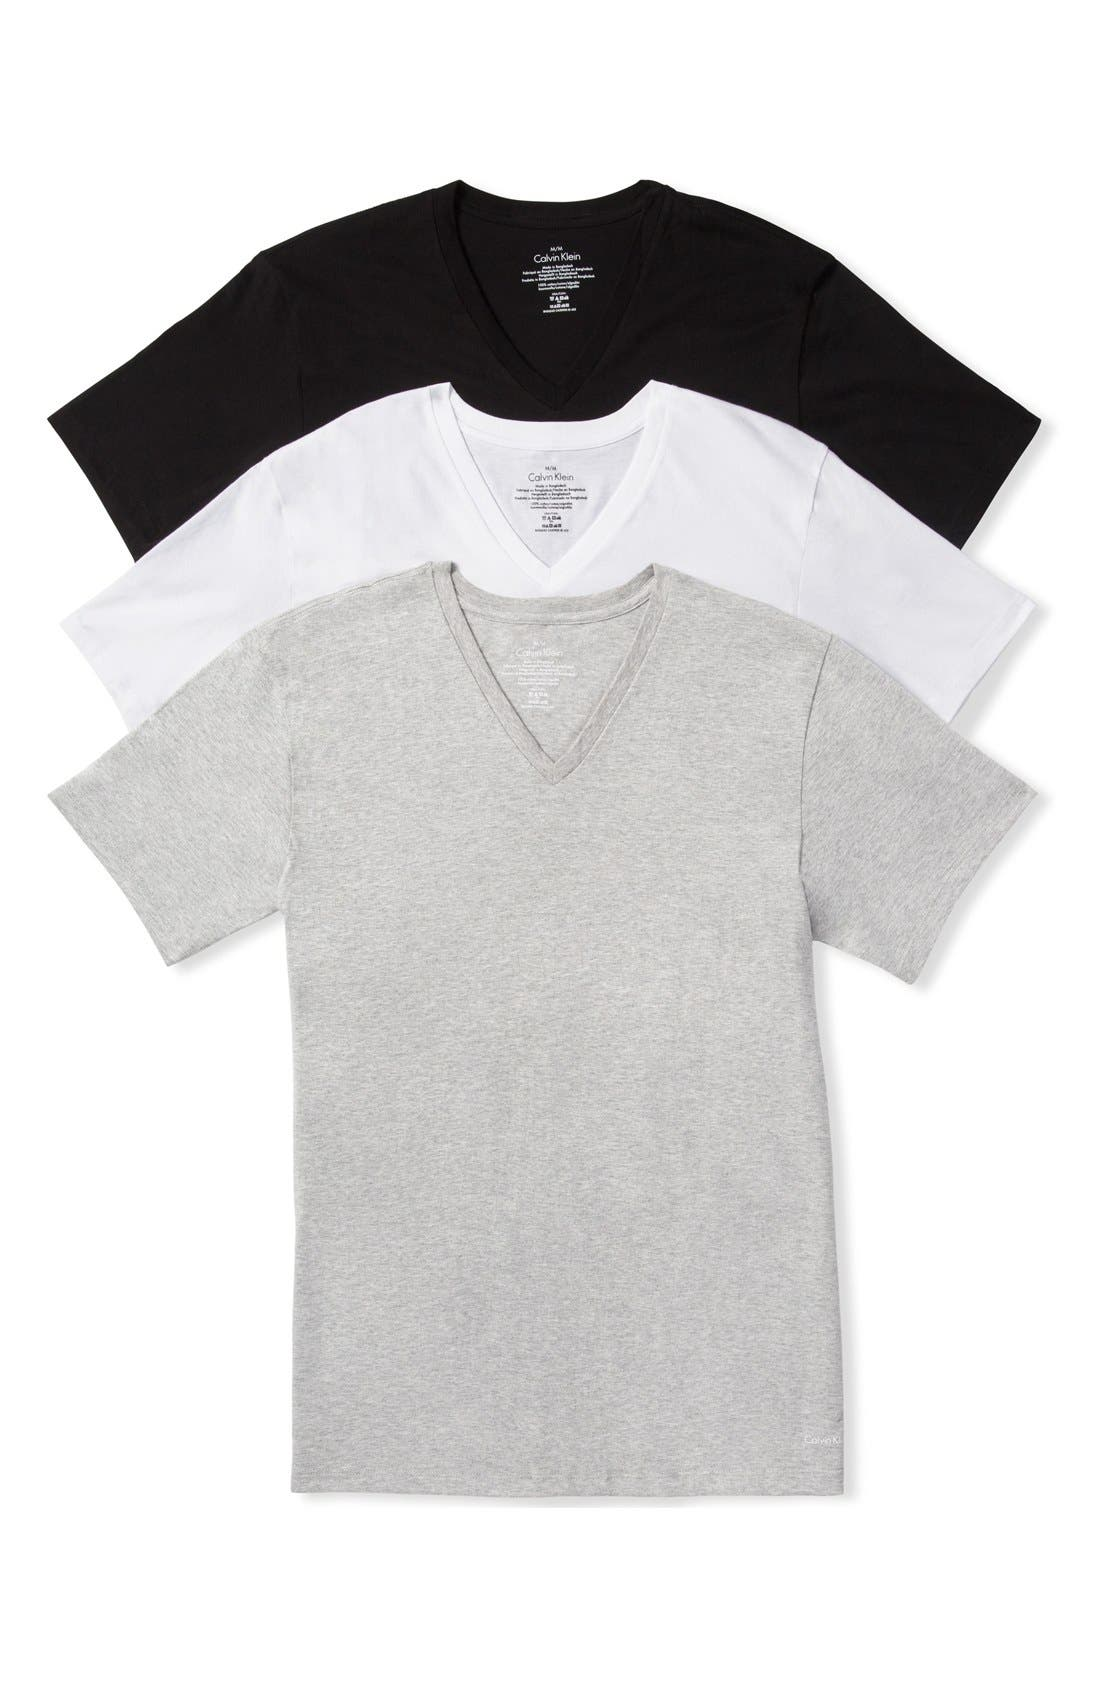 CALVIN KLEIN Assorted 3-Pack Classic Fit Cotton V-Neck